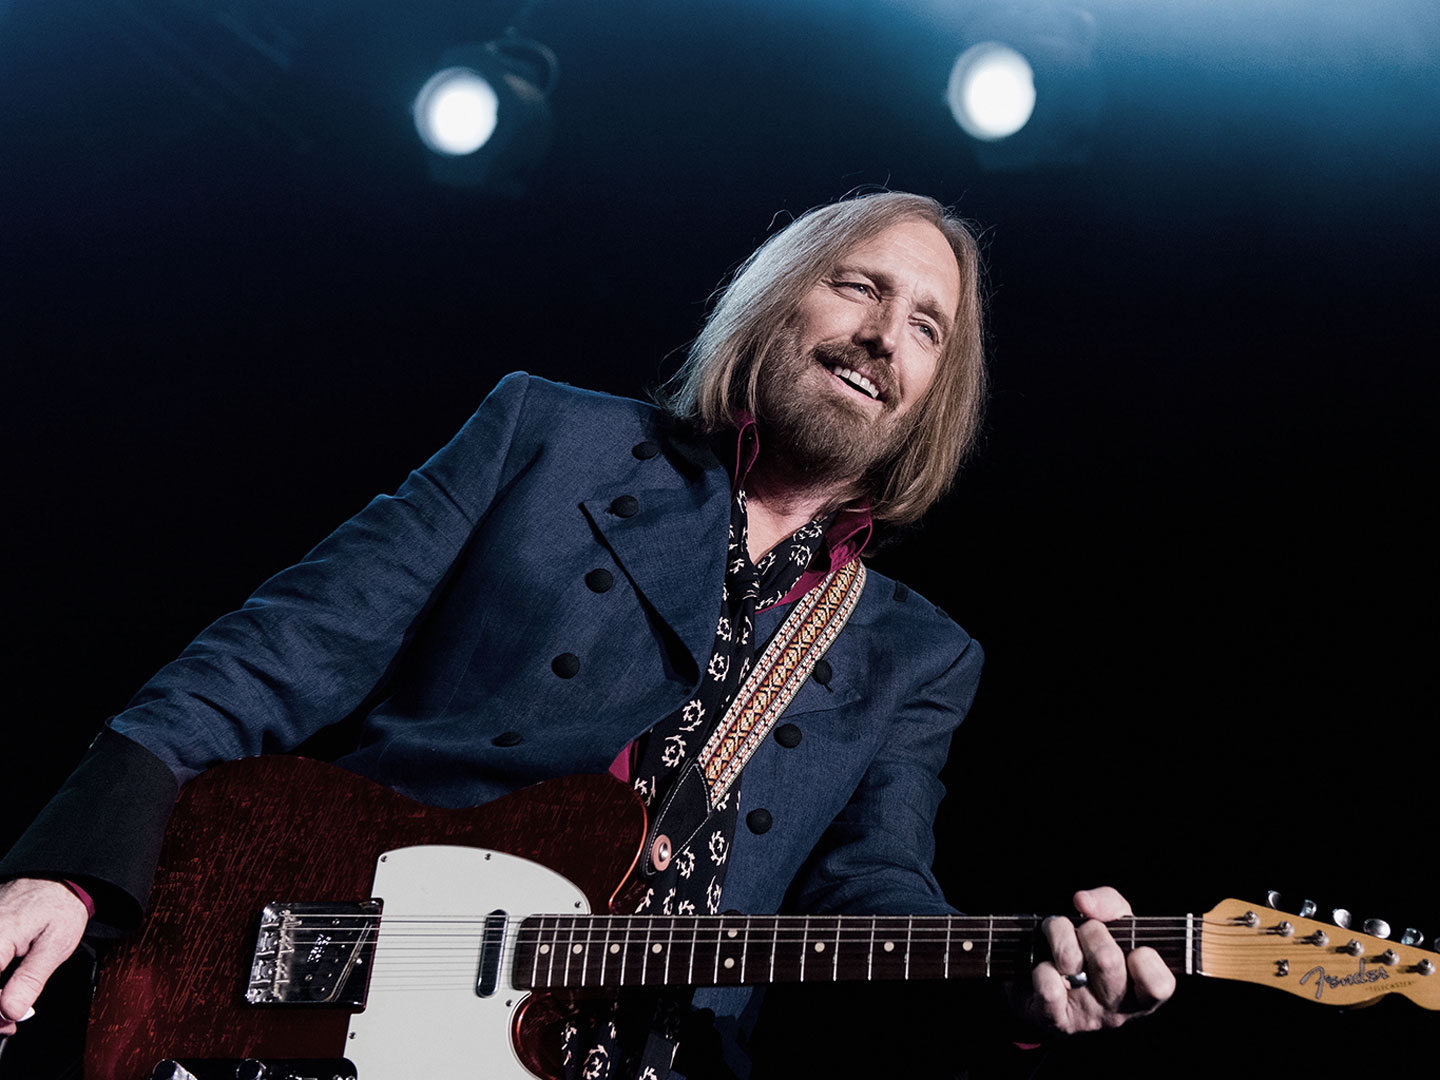 Tom Petty of the Heartbreakers performing live